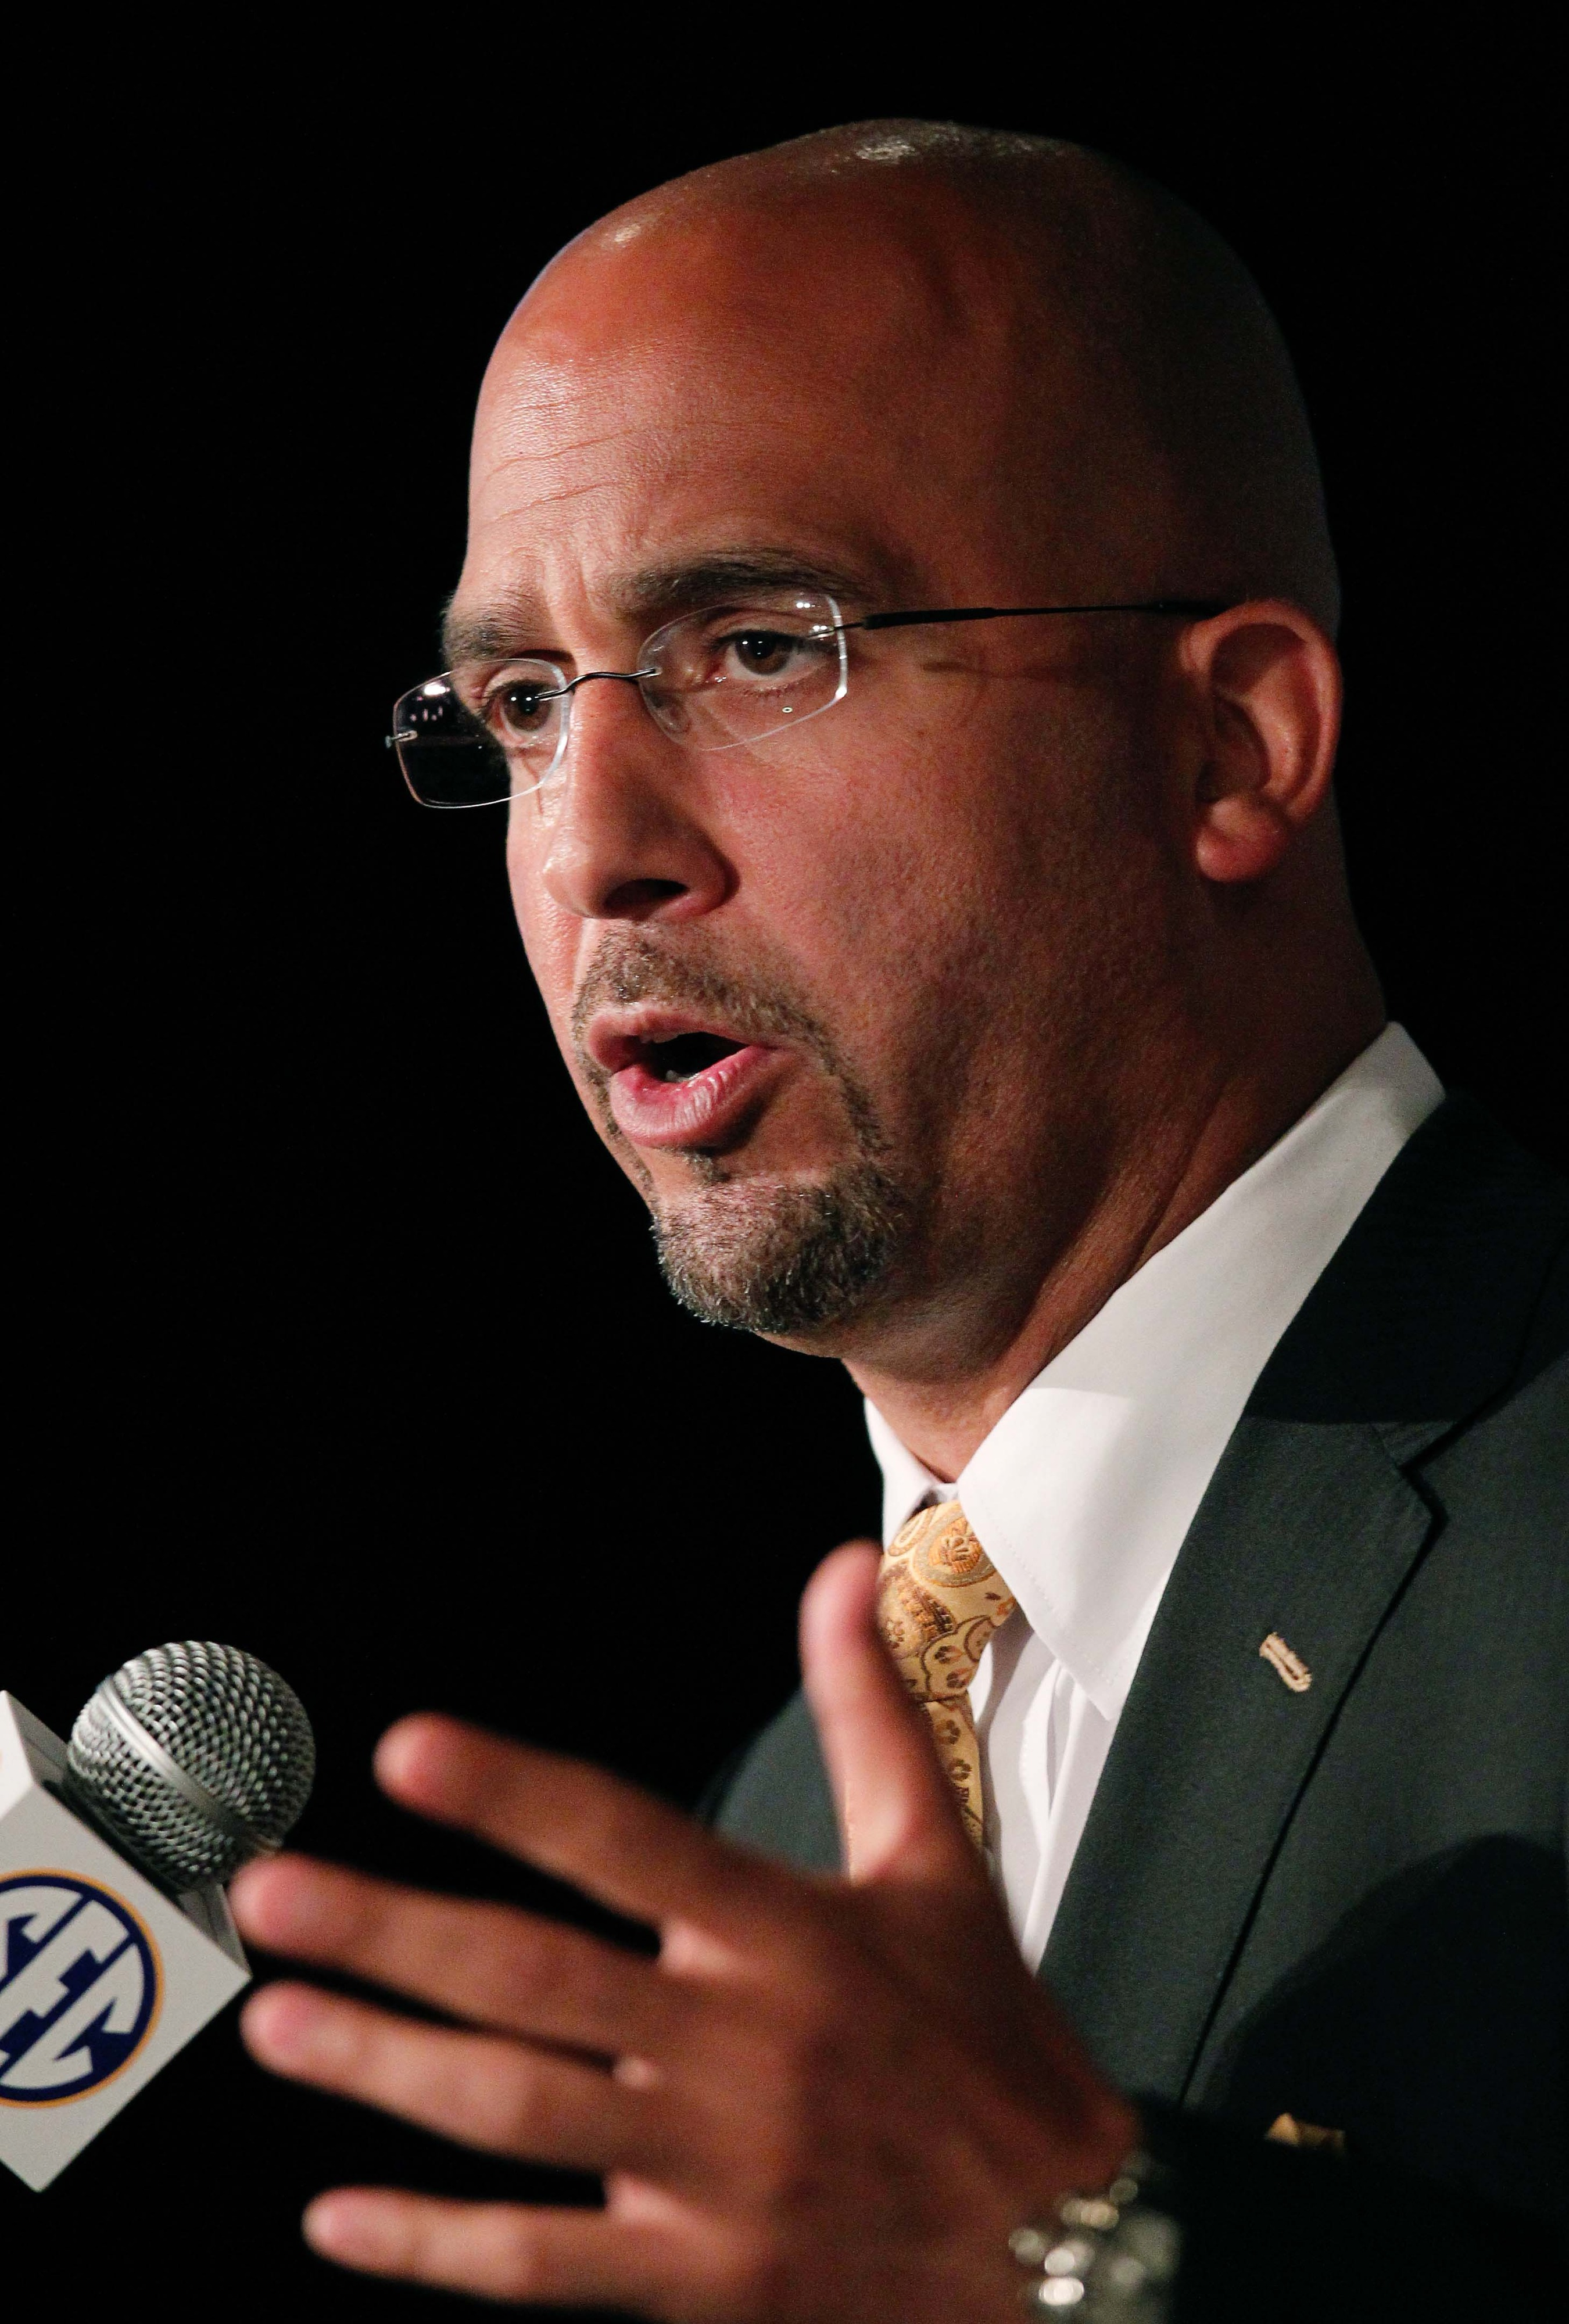 James Franklin denies allegation of deleting criminal evidence